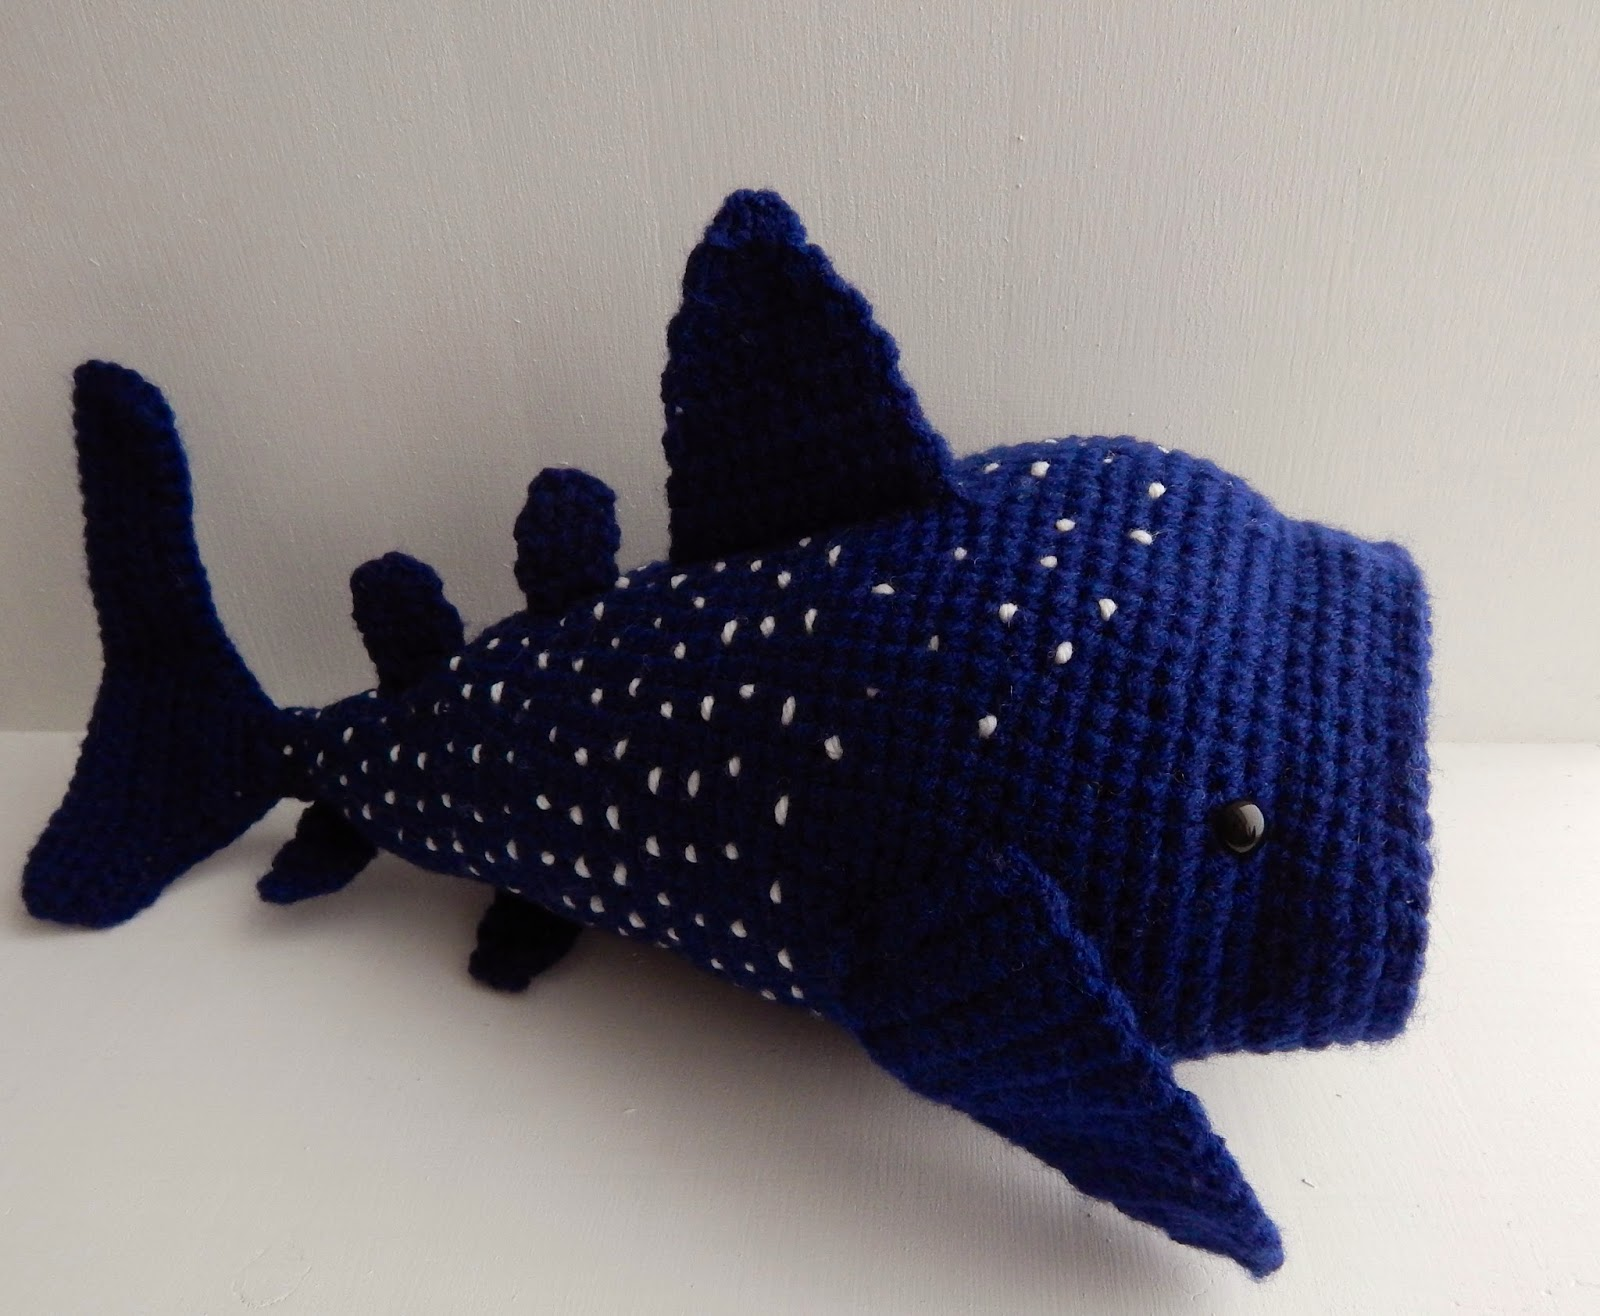 Mini amigurumi whale PDF crochet pattern (With images) | Crochet ... | 1316x1600